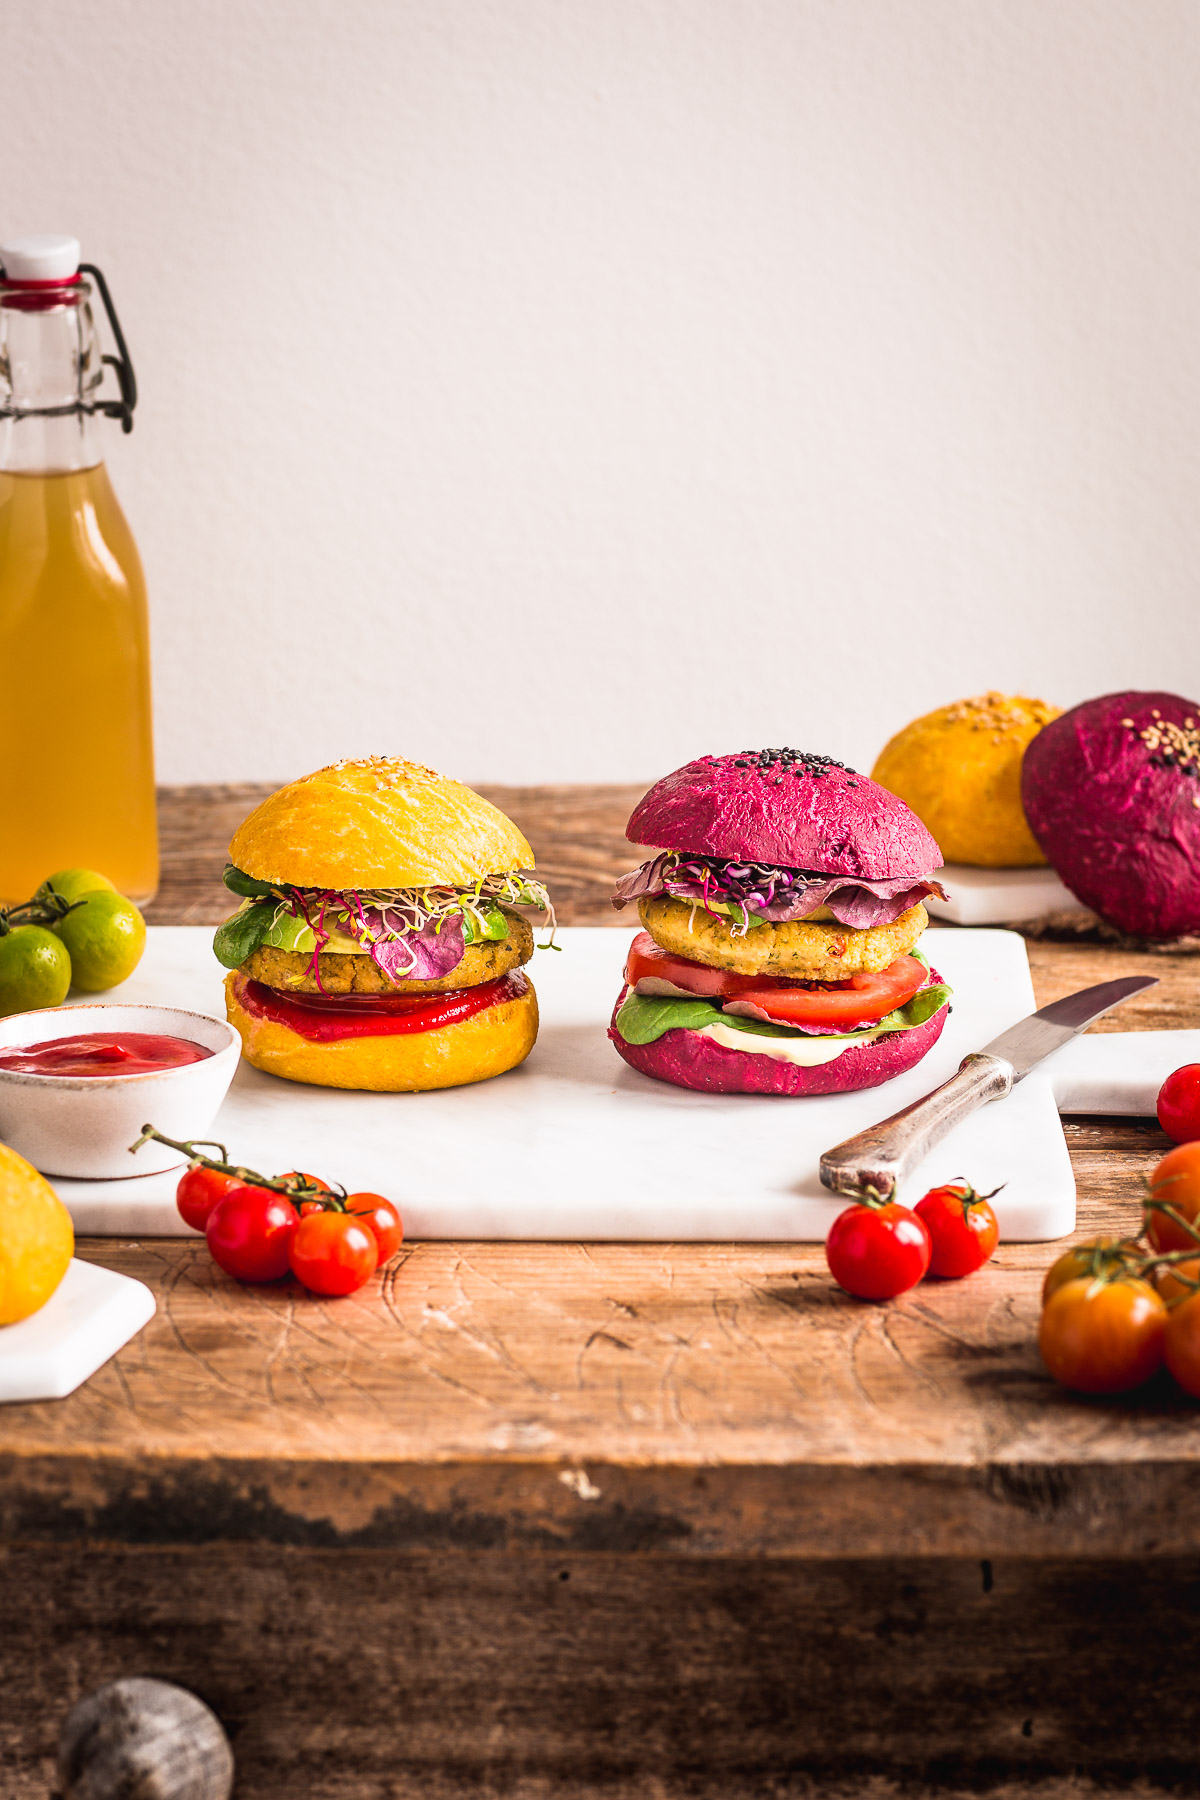 Homemade BEETS and CARROT VEGAN BURGER BUNS recipe PANINI VEGANI per BURGER al FARRO fatti in casa